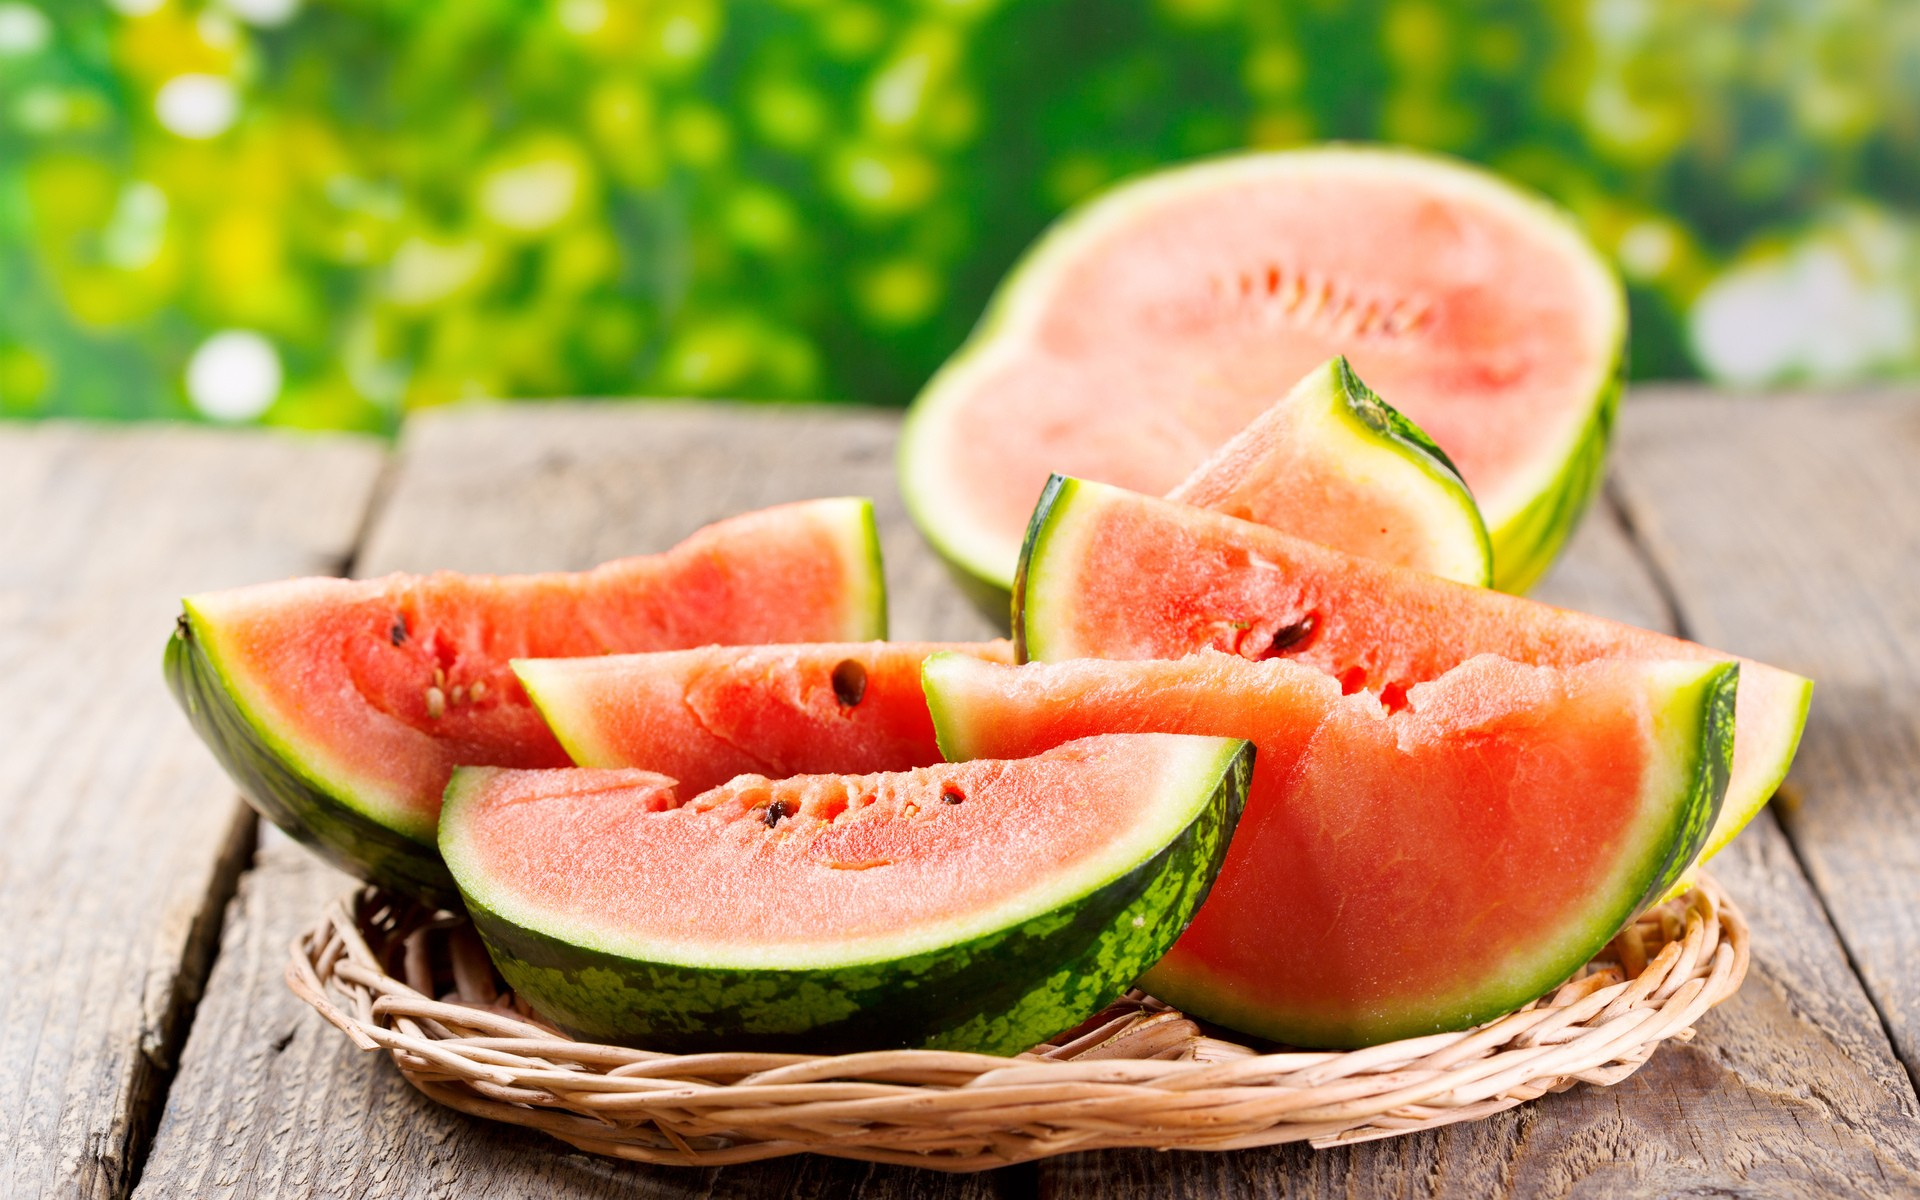 wooden surface food closeup fruit watermelons lunch